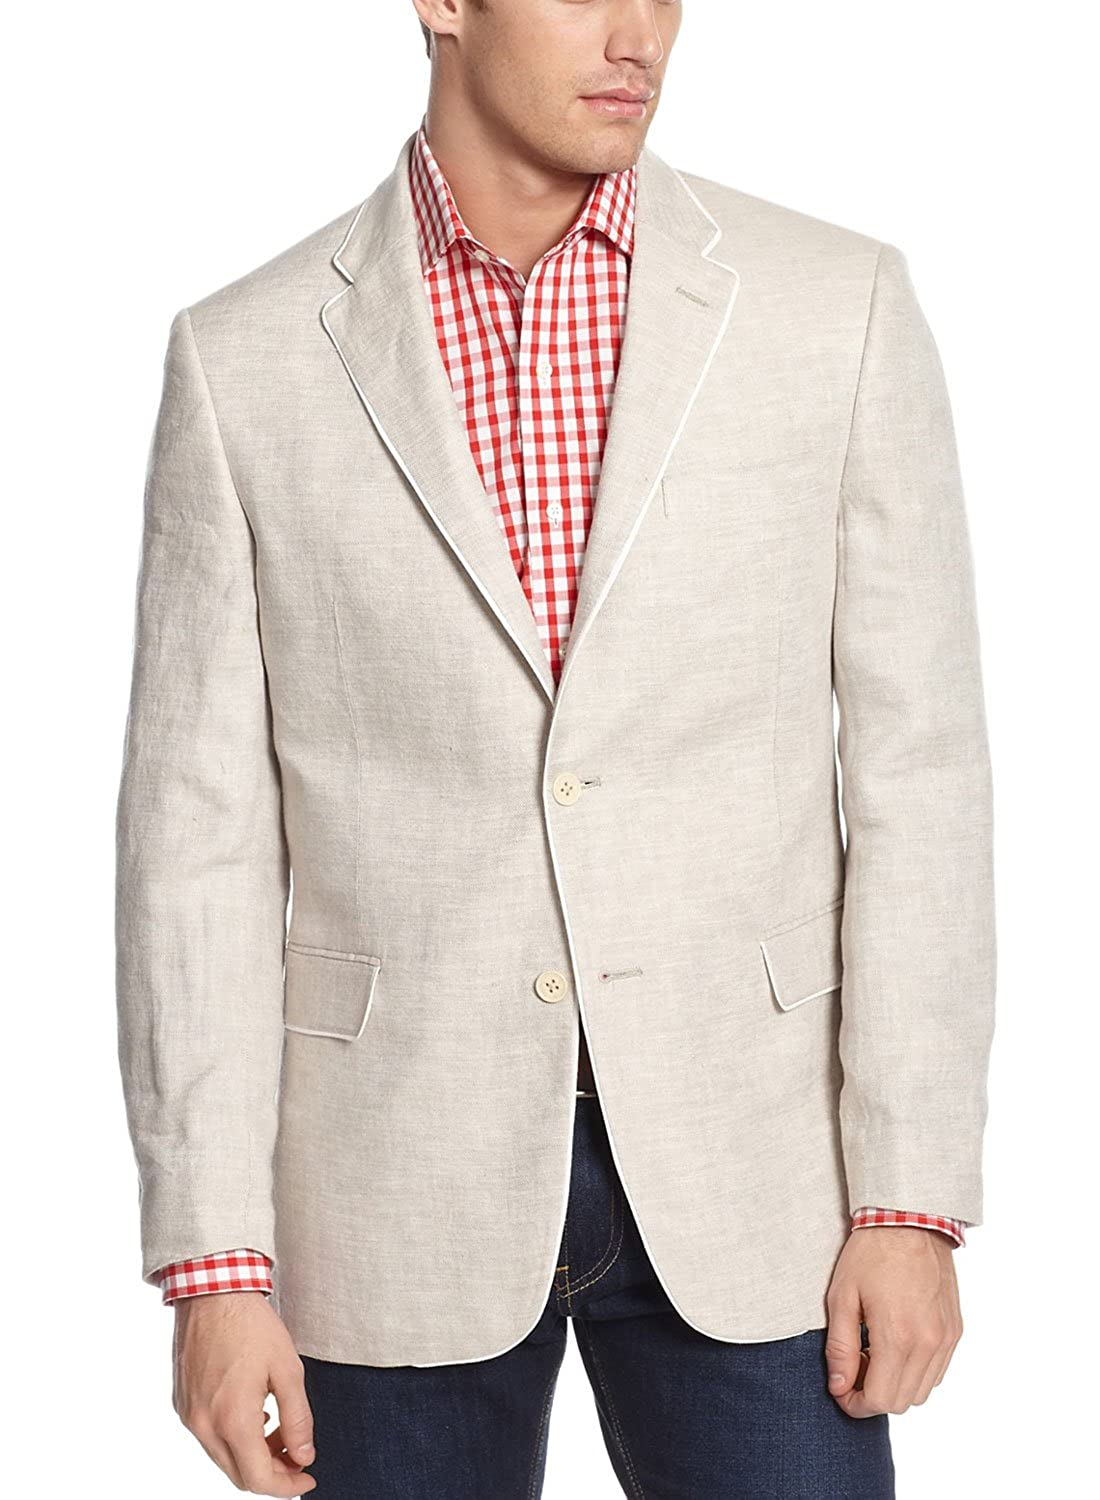 da3fc5bed668 Tommy Hilfiger Men s Beige Textured Two Button Pure Linen Blazer Sportcoat  (38S)  Amazon.in  Clothing   Accessories